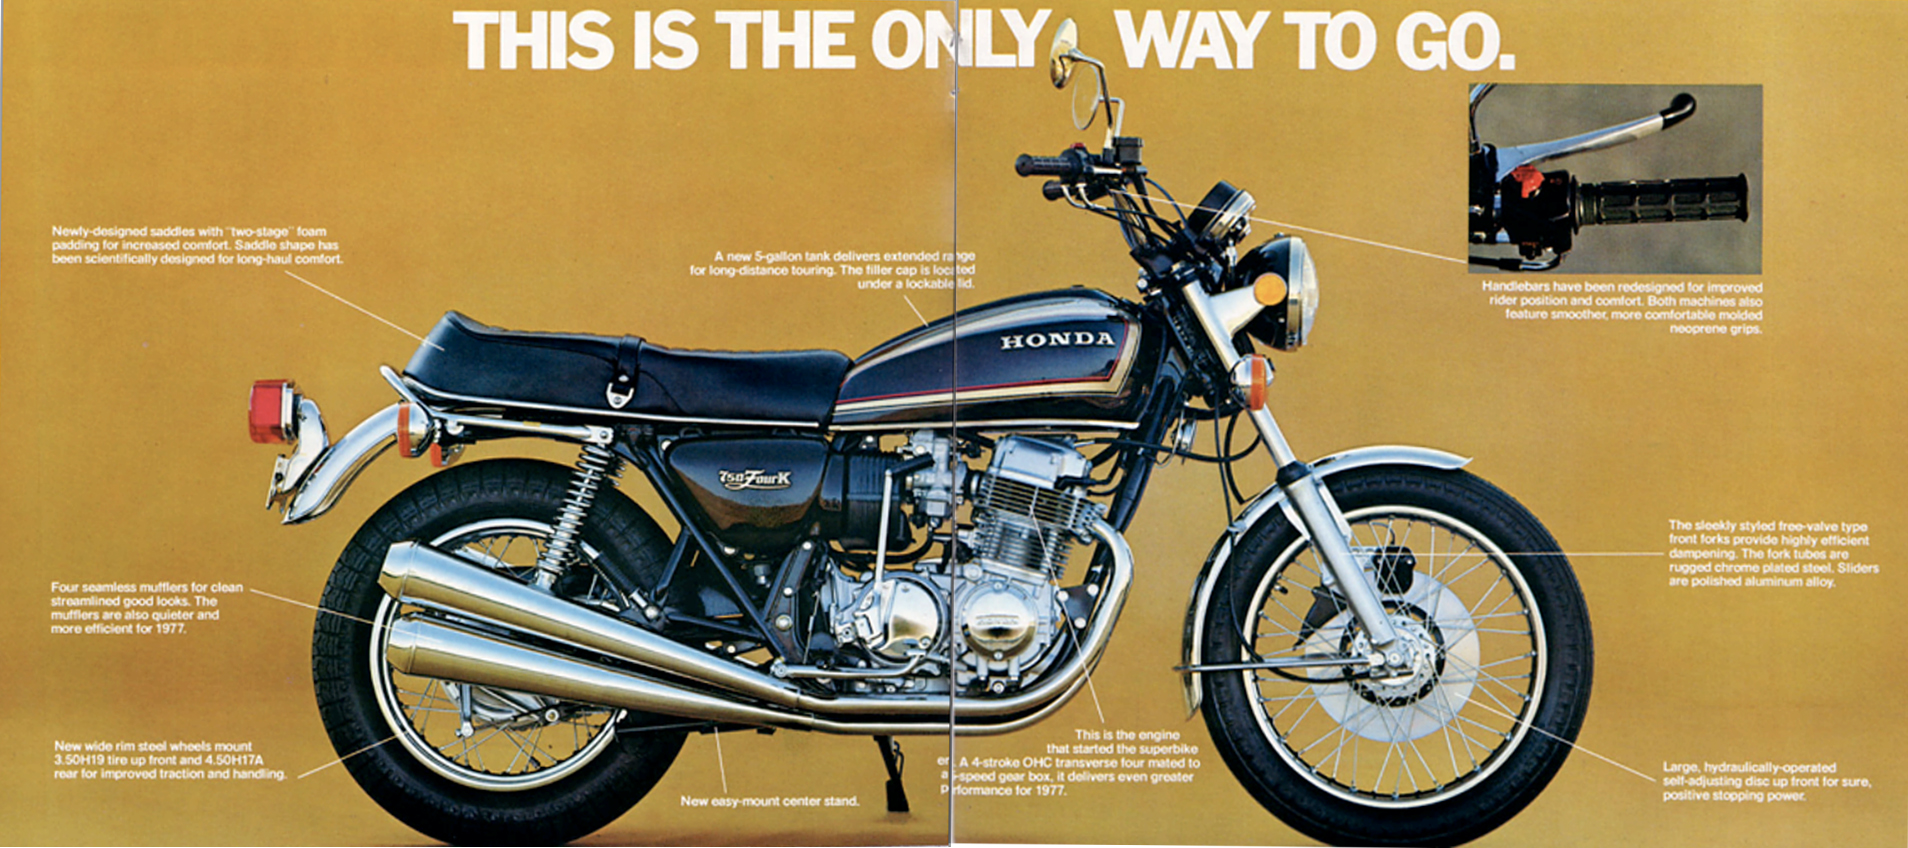 Https 2012 11 22 Roma Honda Cb750k Wire Diagram On Motorcycle Wiring Harness 1976 This Is The Only Way To Go Cb750 Cb550 3